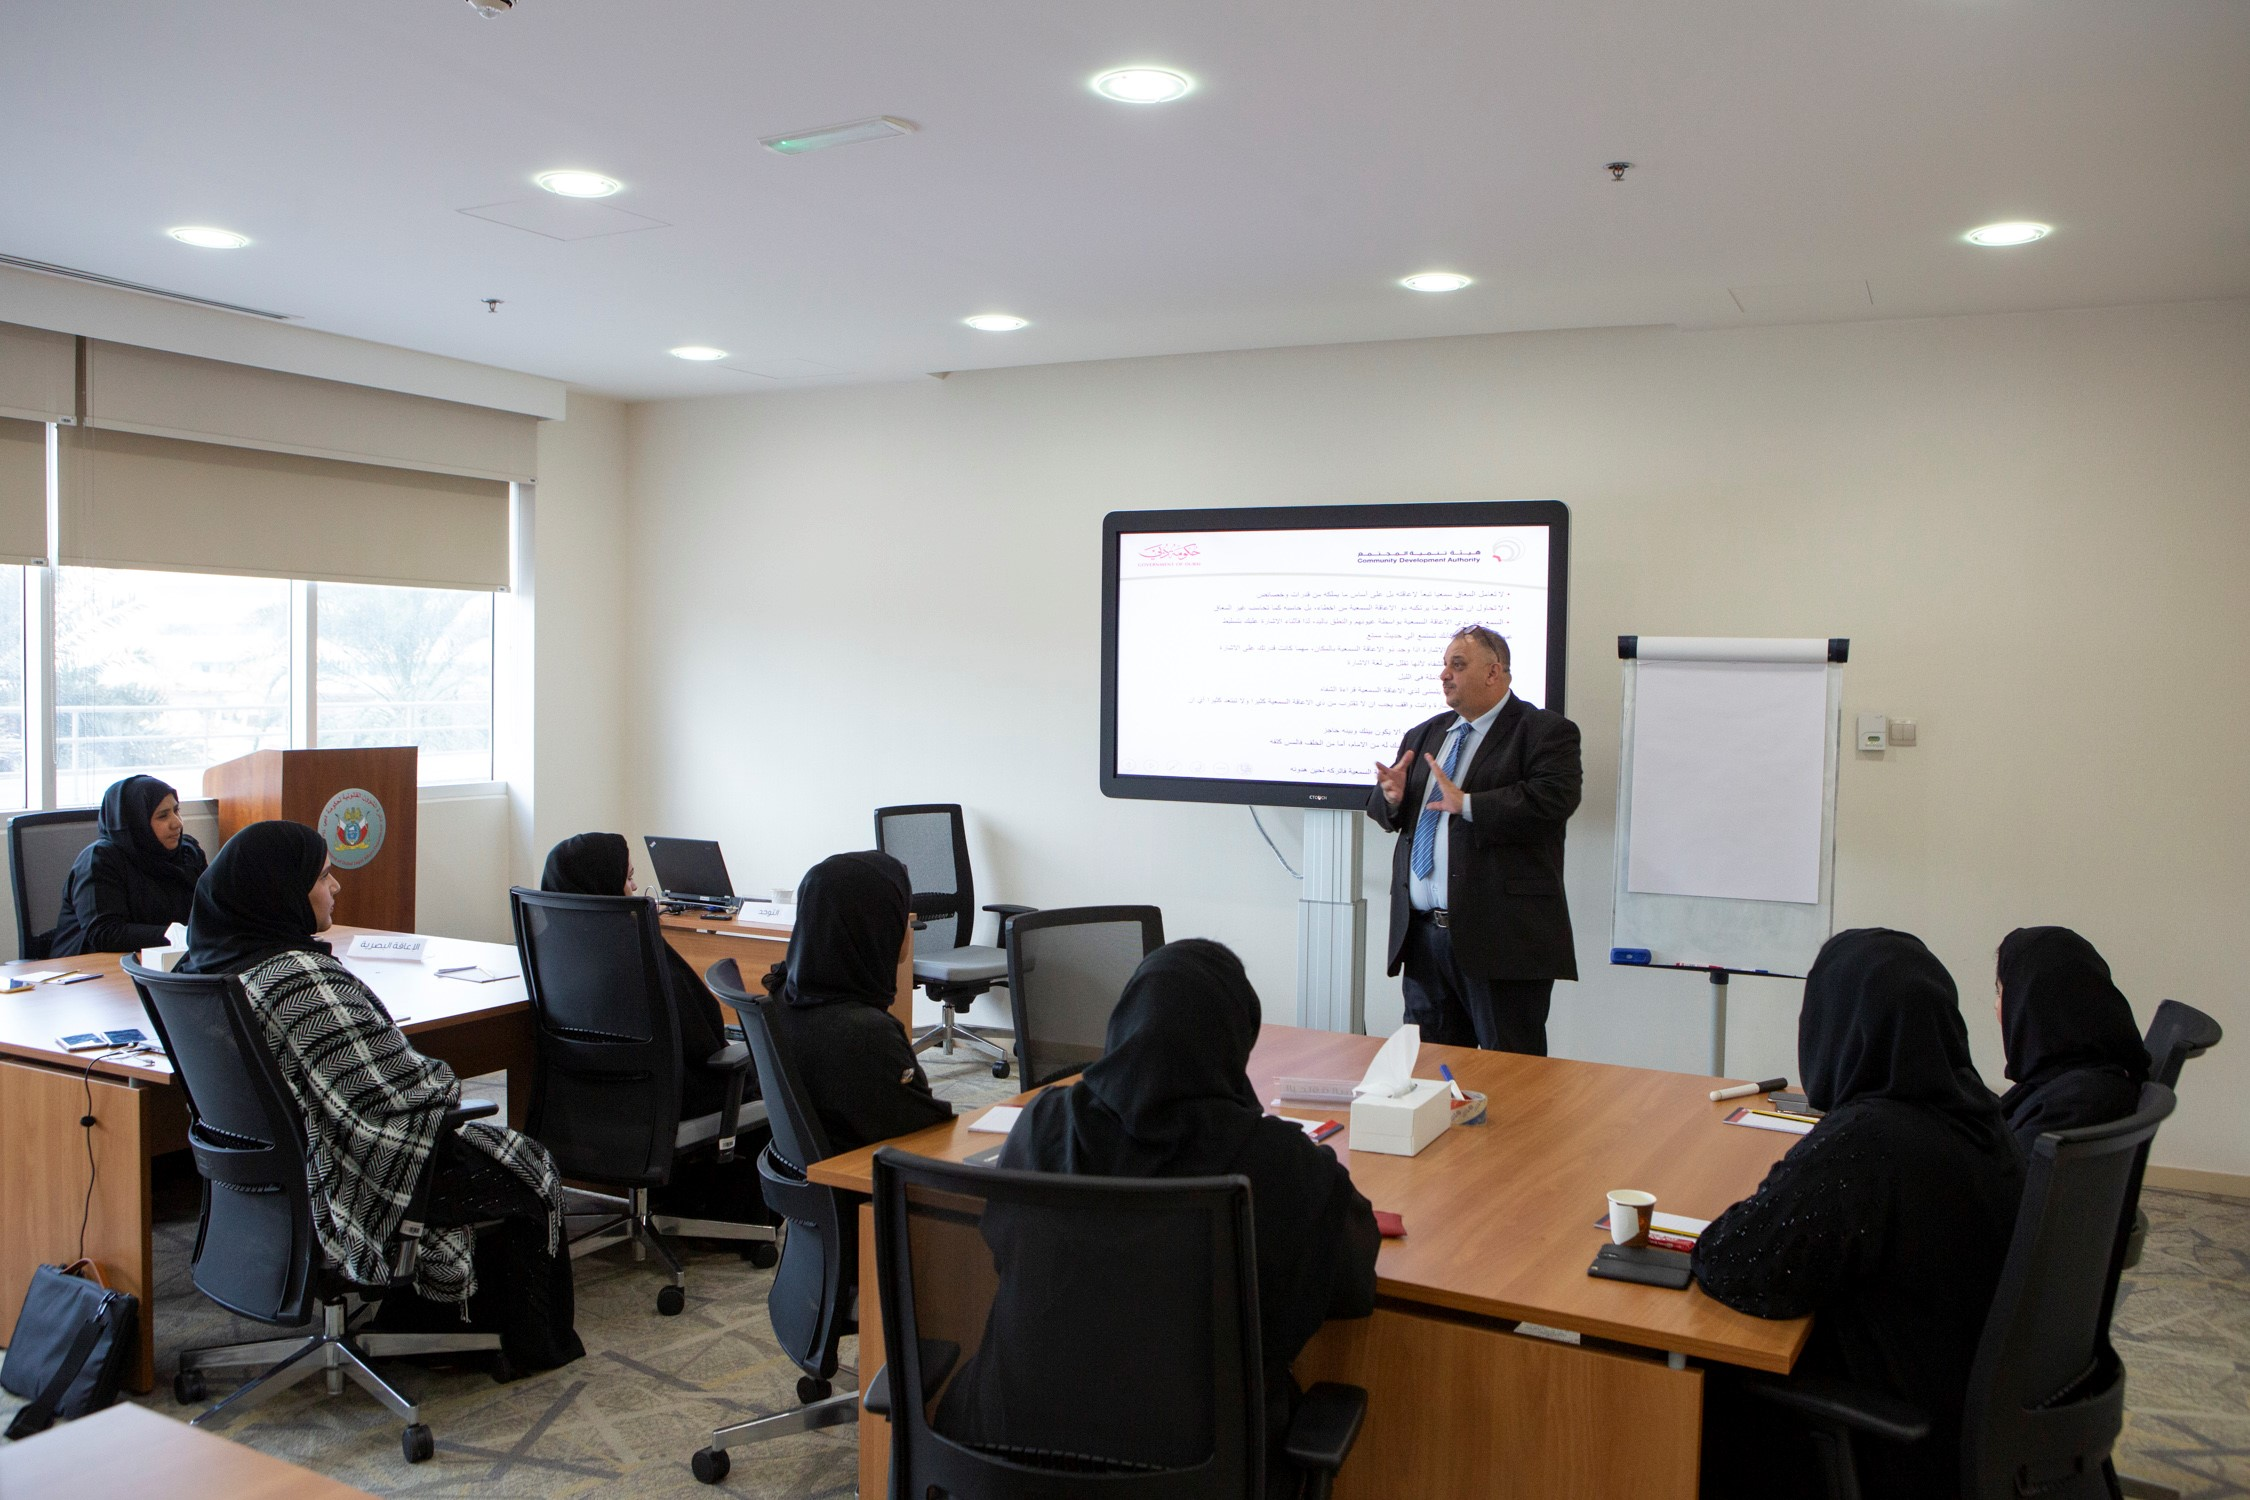 The Government of Dubai Legal Affairs Department organises a training course for its employees on how to use sign language